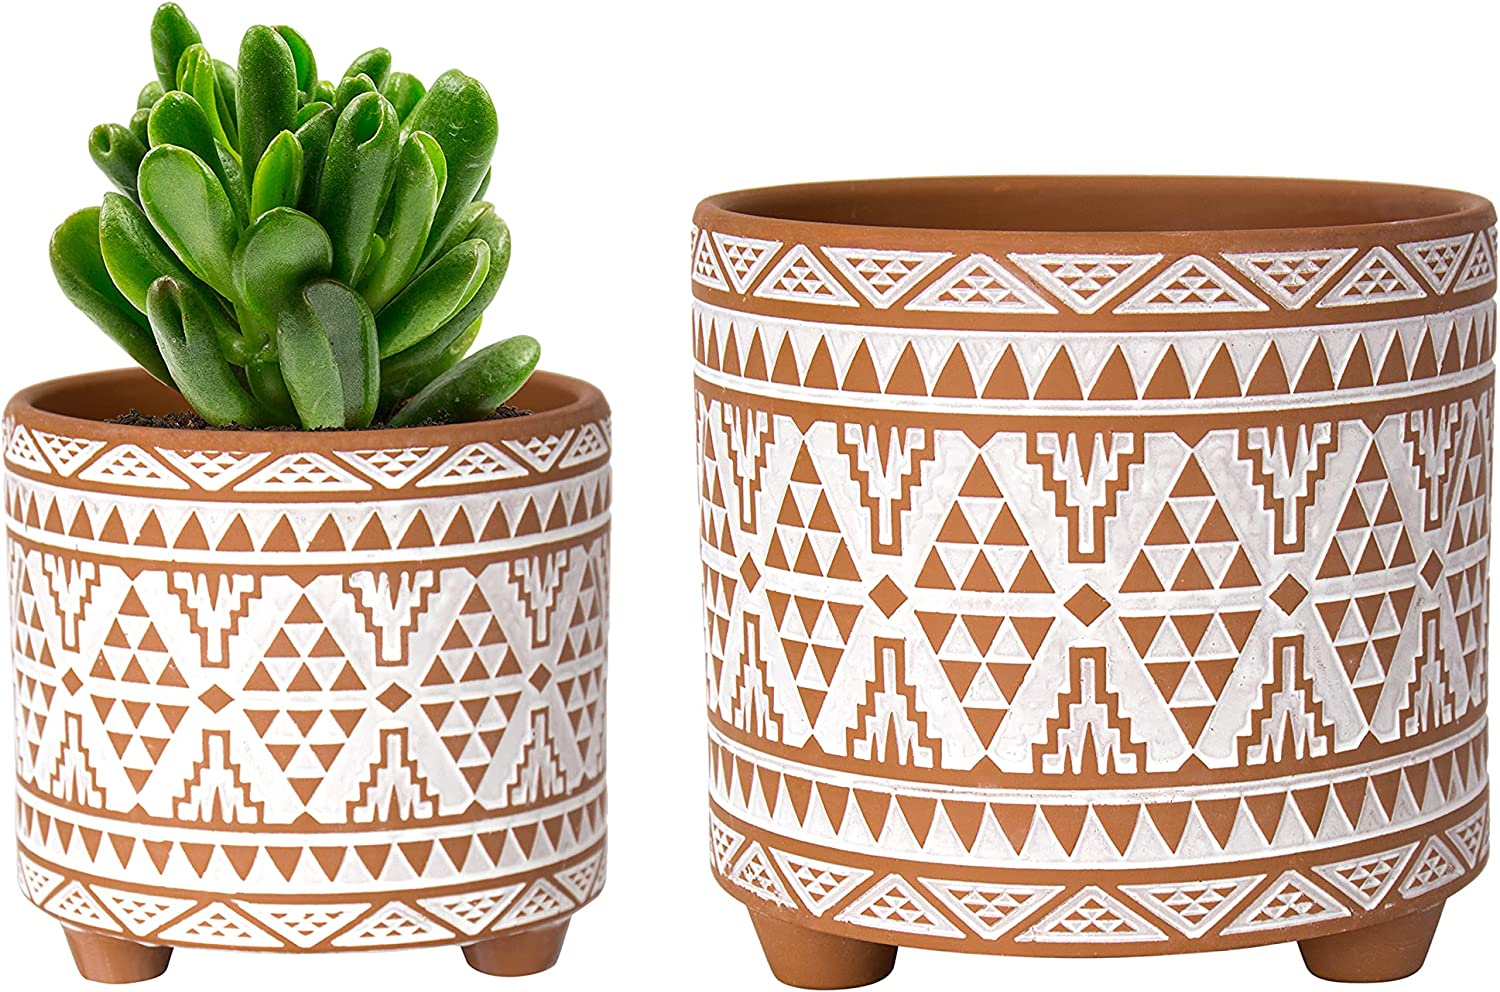 High quality Set of 2 Terracotta Planter Pots Ranking TOP5 6 Inch Totem 4 Design